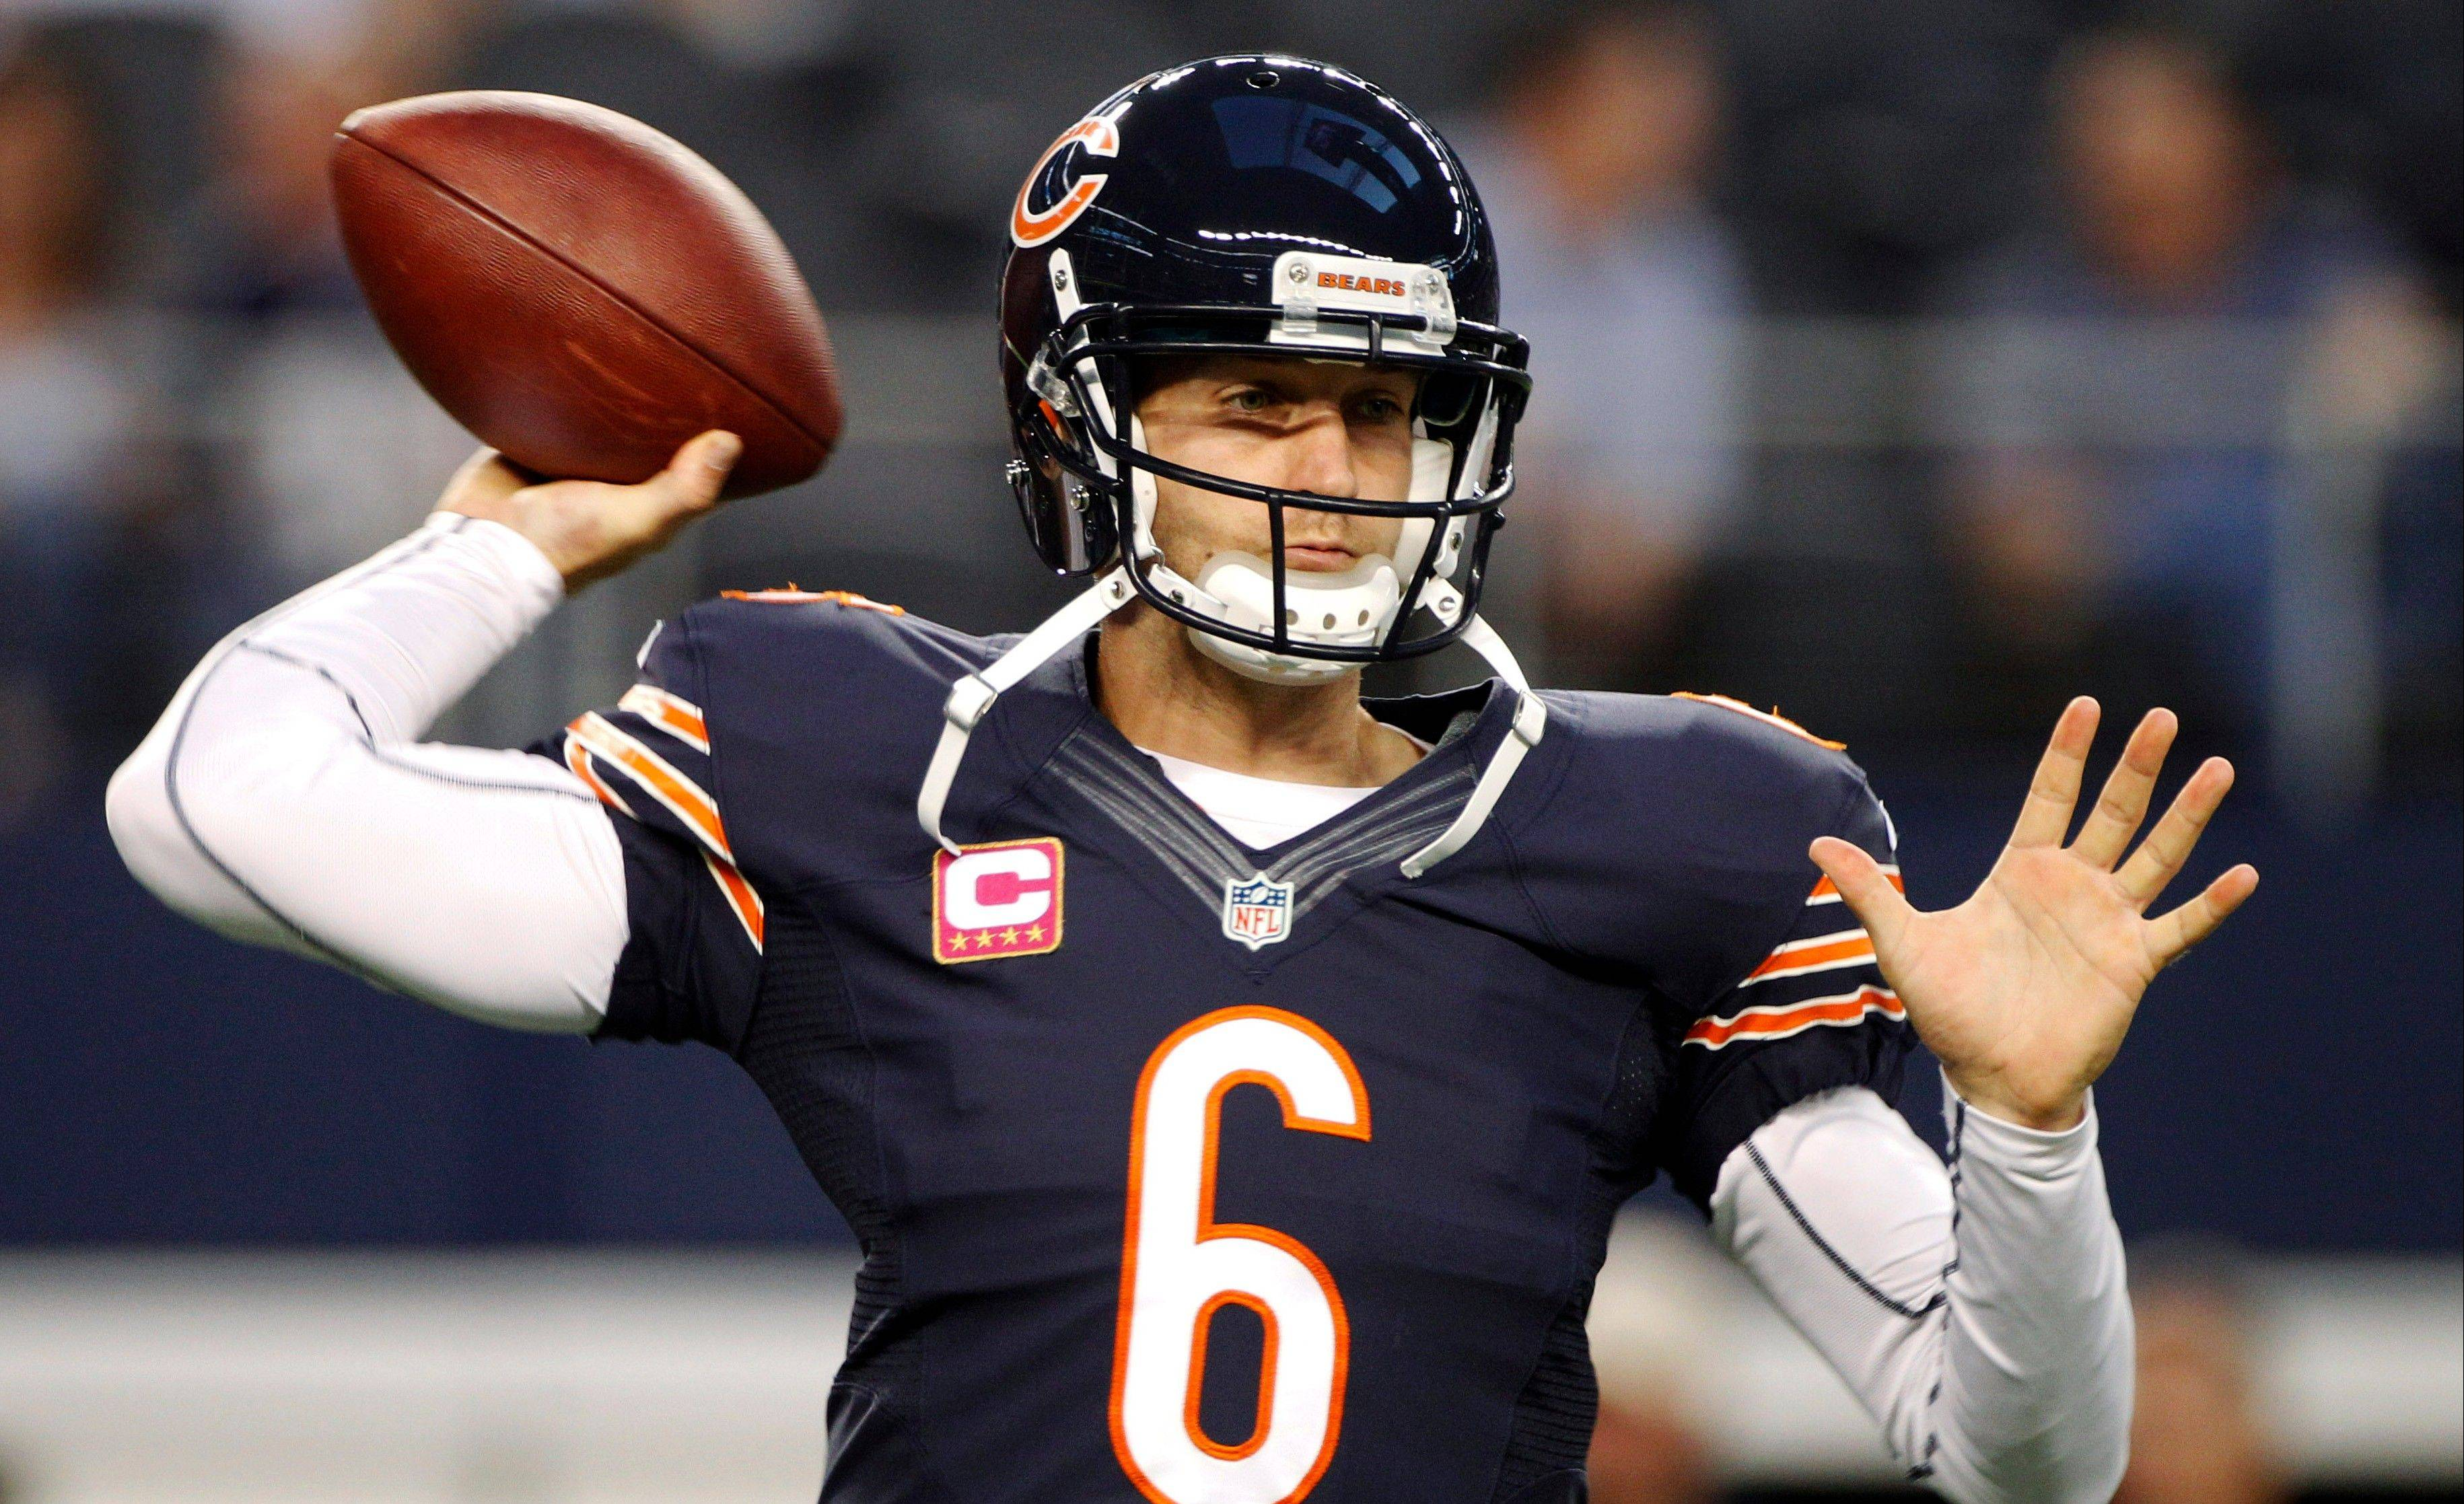 Bears QB Jay Cutler completed 18 of 24 passes against the Cowboys on Monday, including 8 of 8 in the third quarter.